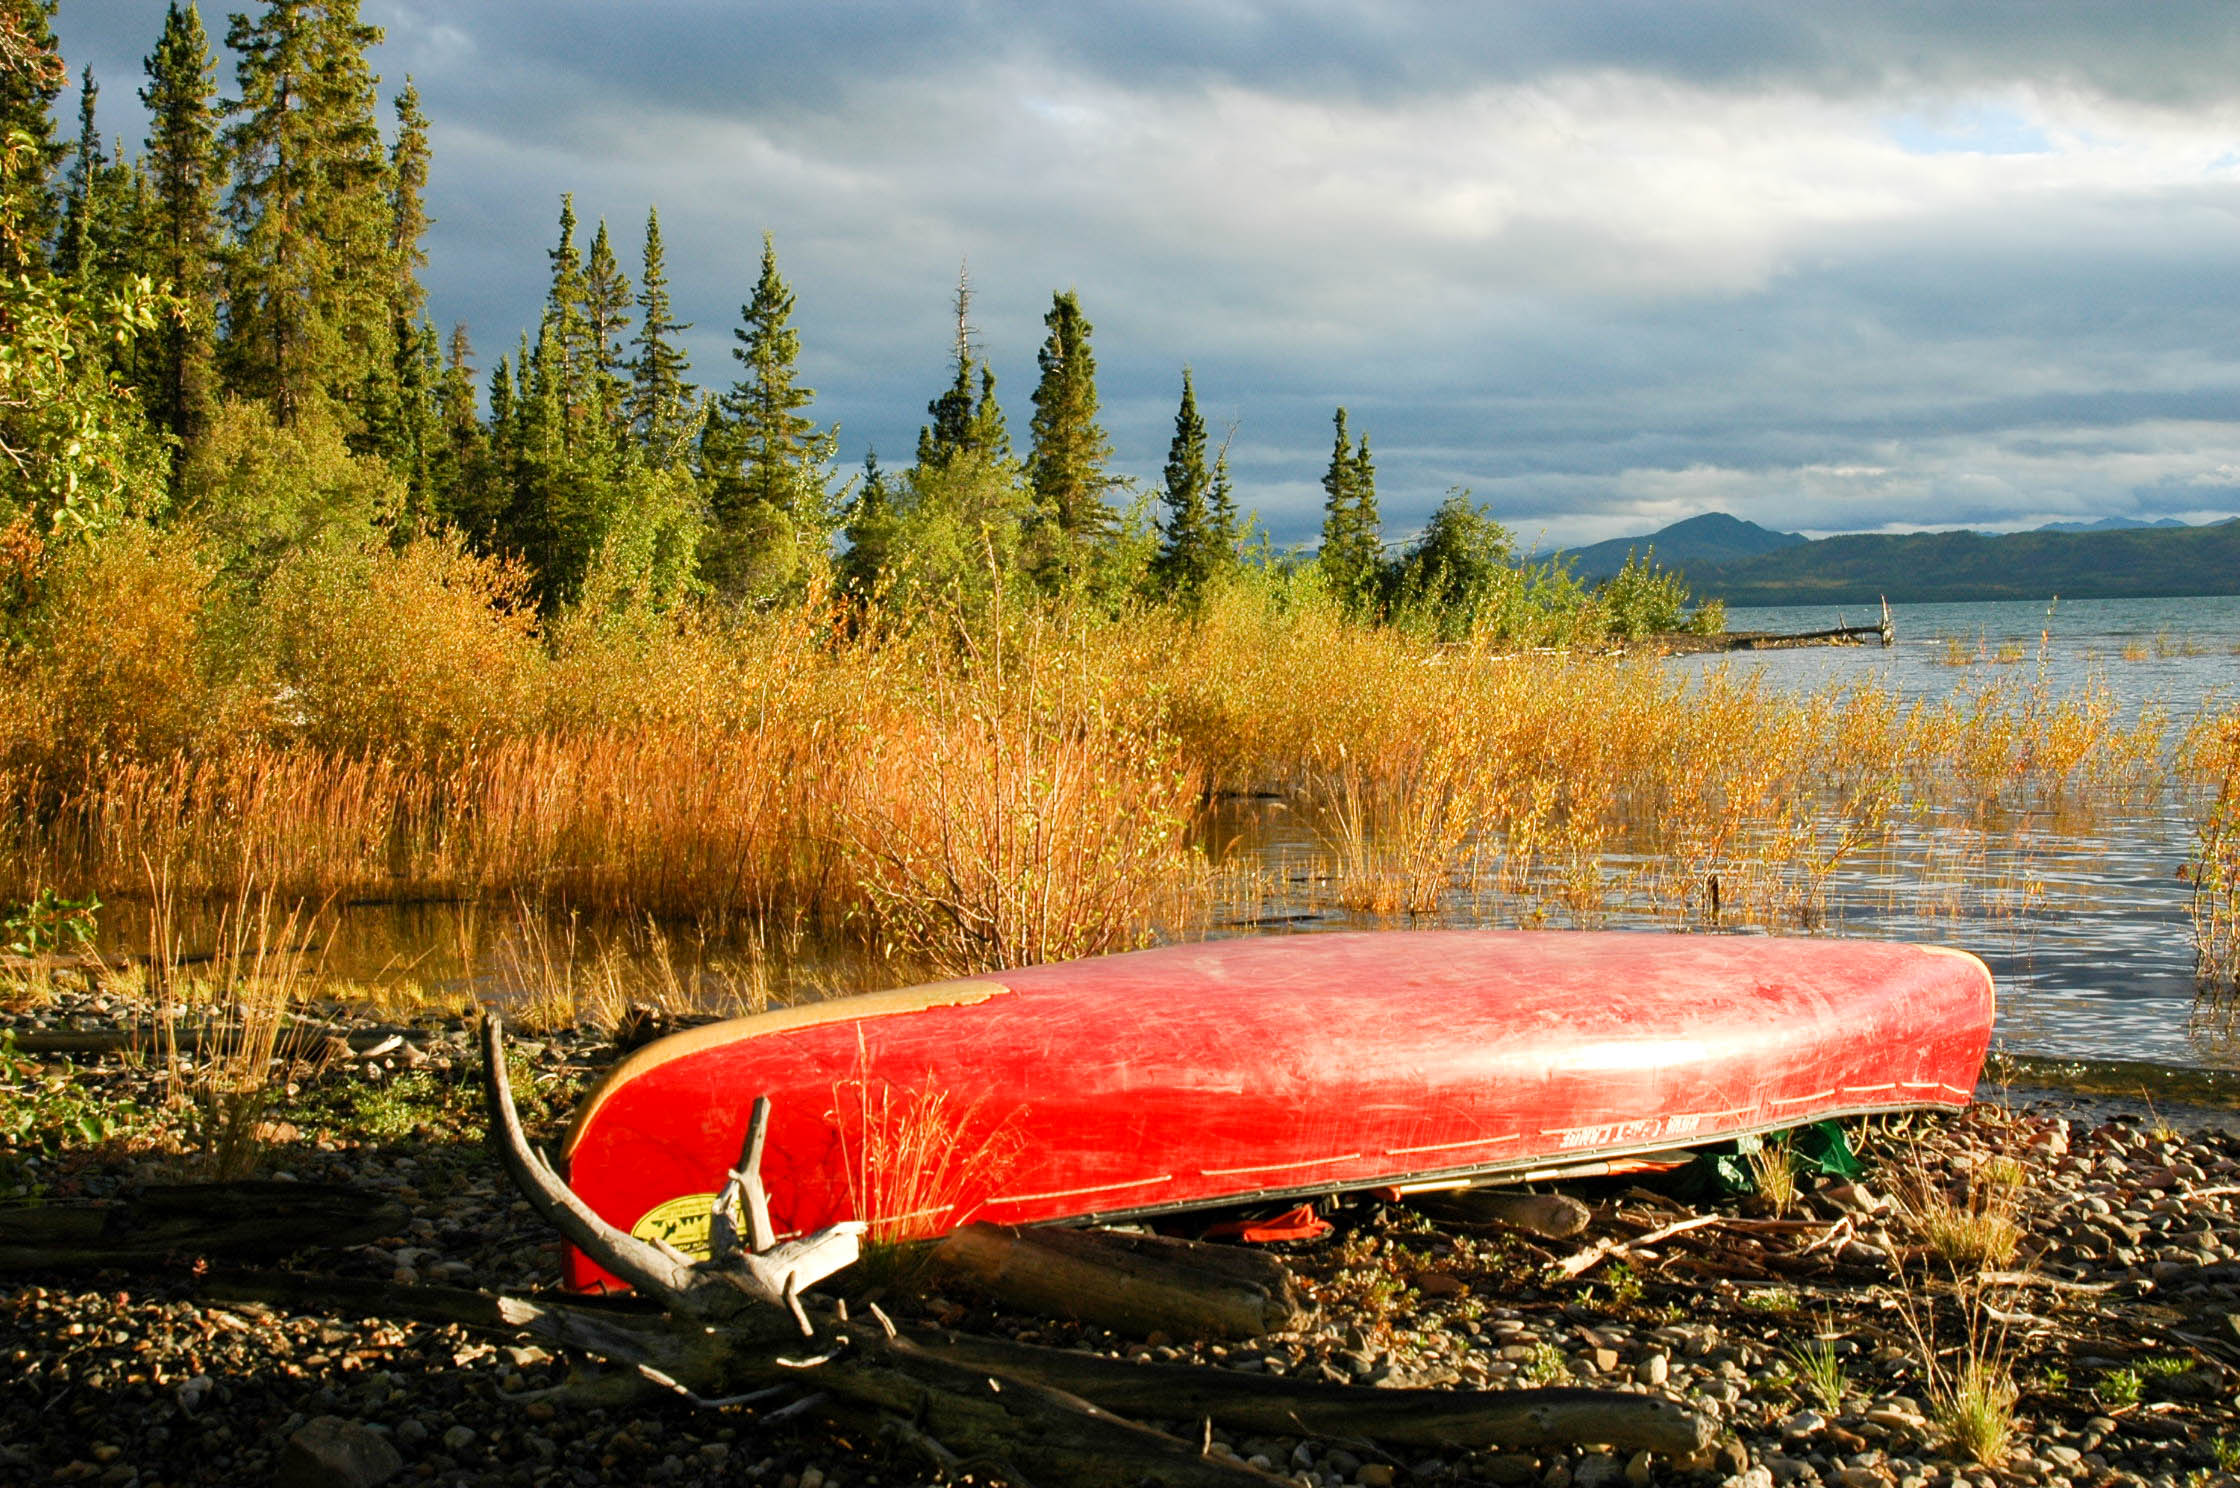 Yukon River Tour - Lake Laberge bis Carmacks - Kanu